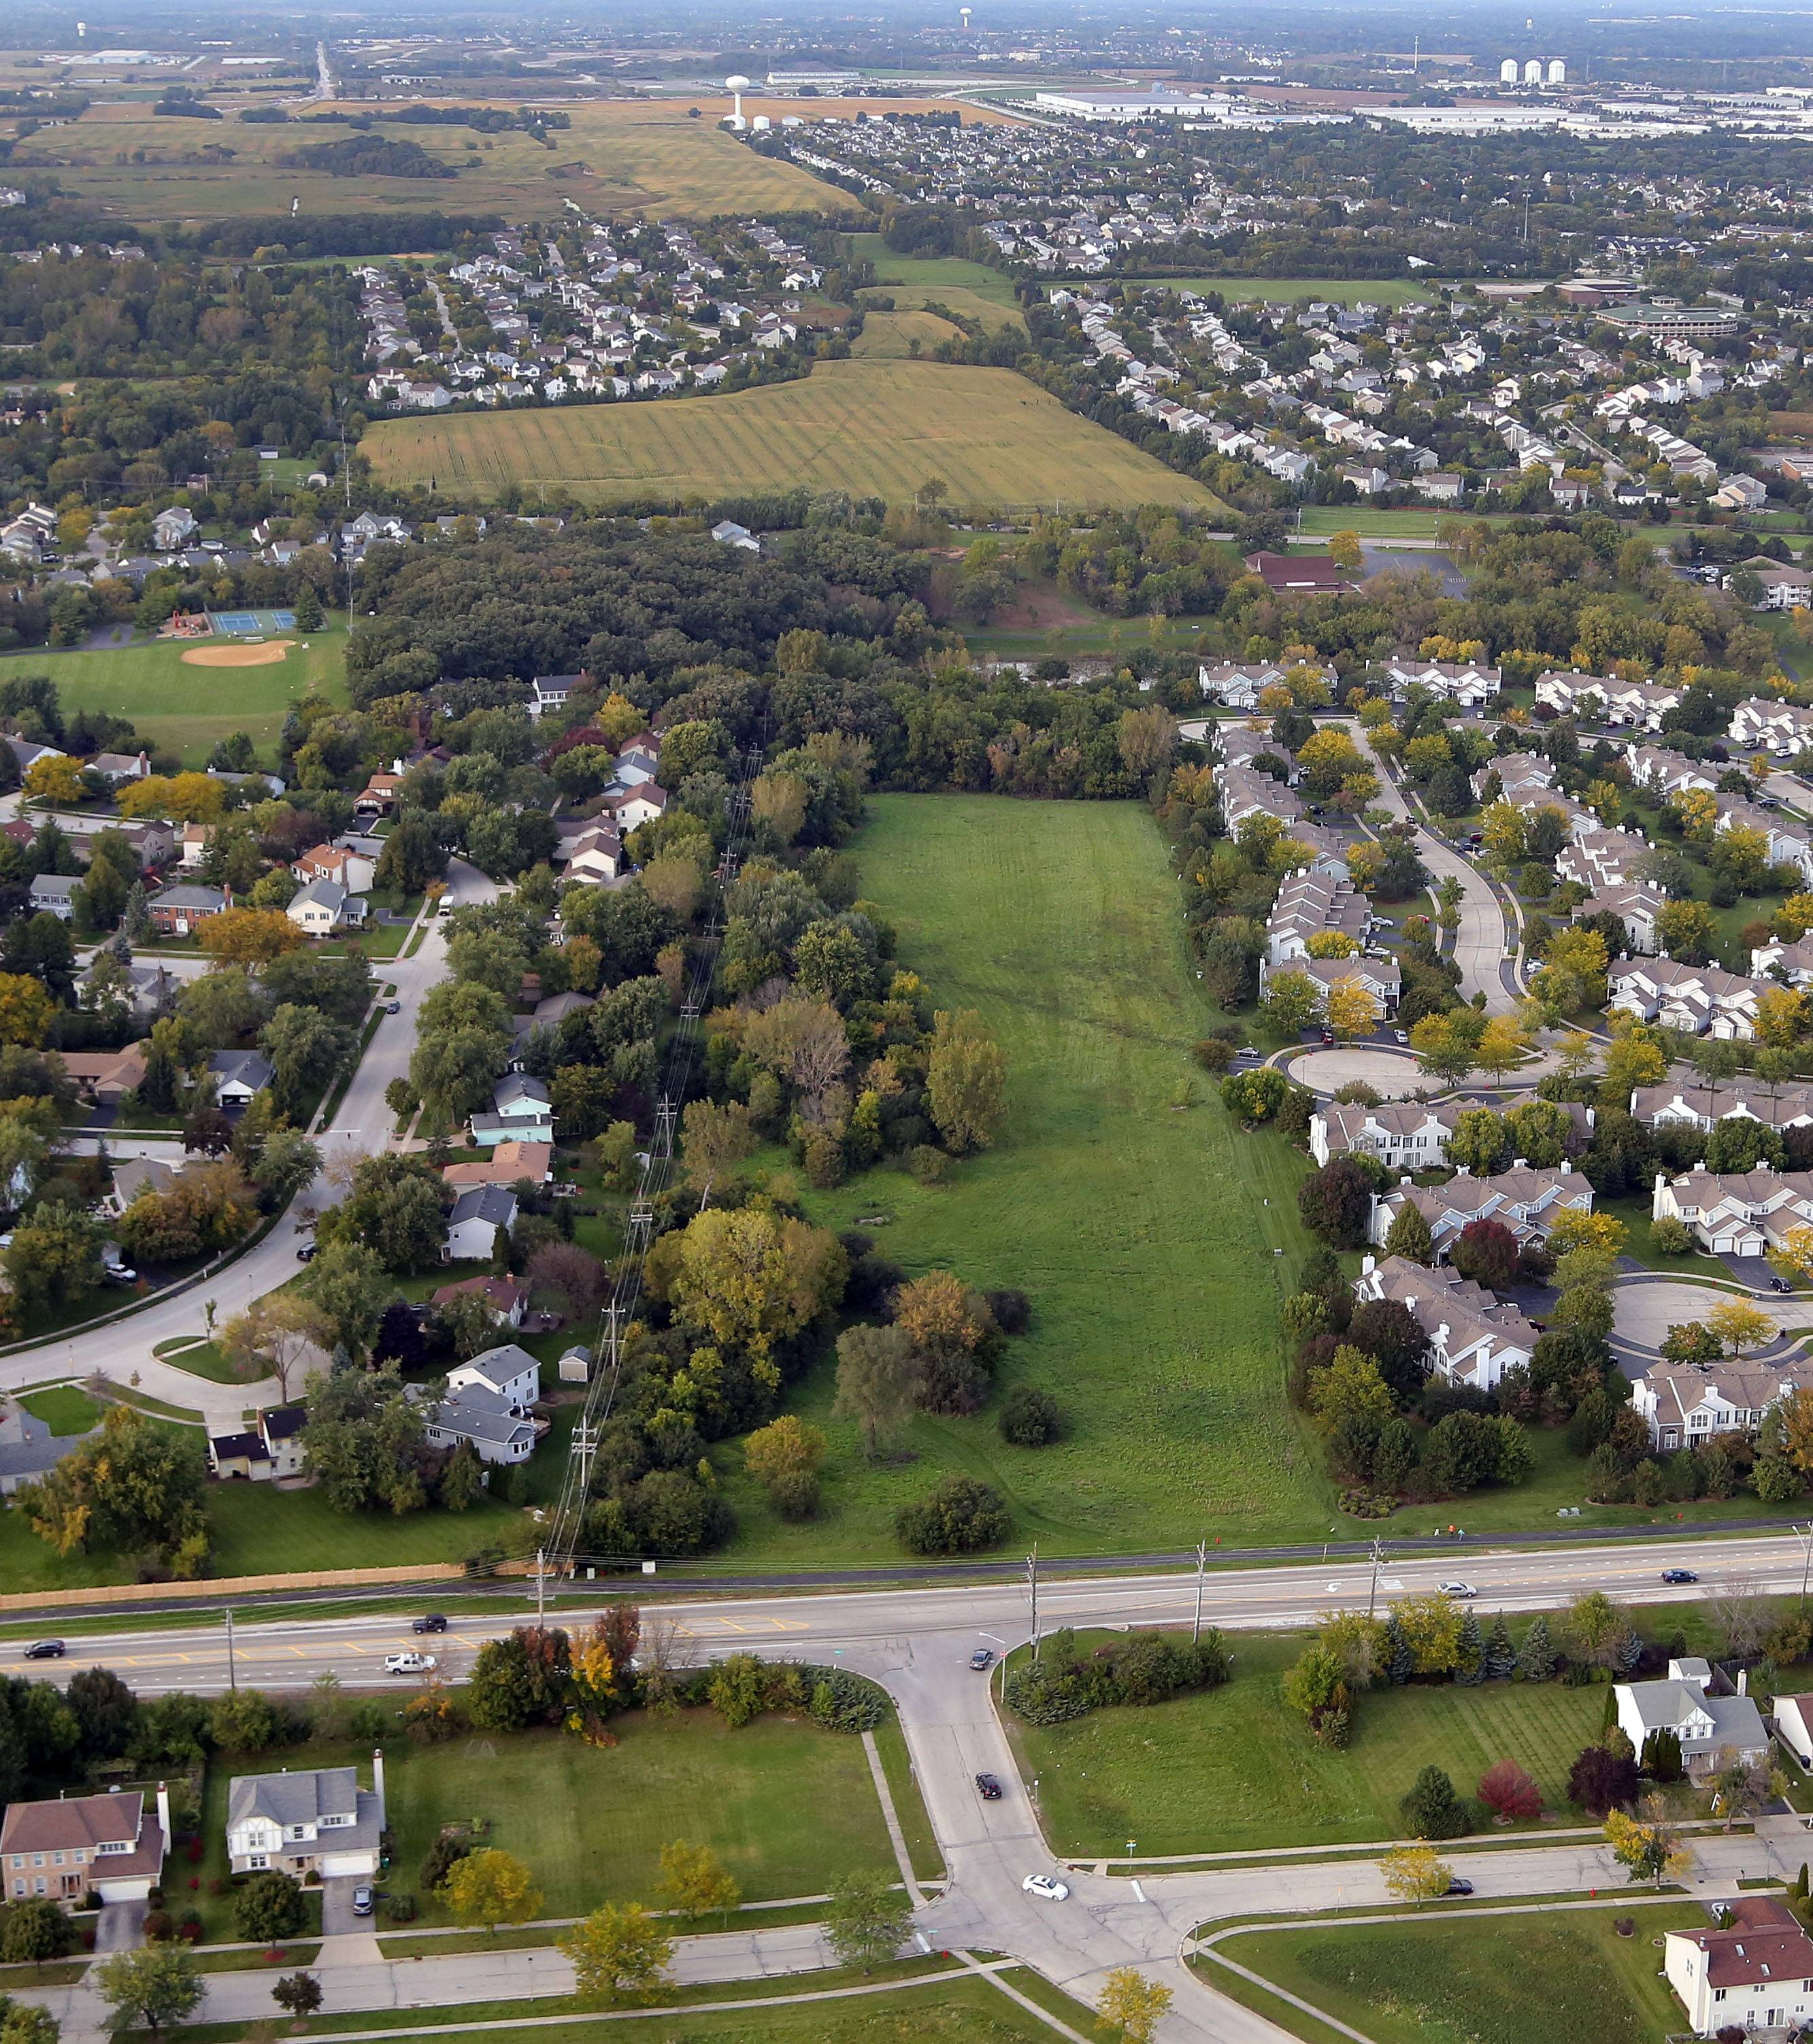 The path of a proposed Route 53 extension cuts through a neighborhood along Hawley in Mundelein just west of Mundelein High School. Opponents of the proposal are pushing for a health study, separate from a planned environmental study, to examine the road's impacts.